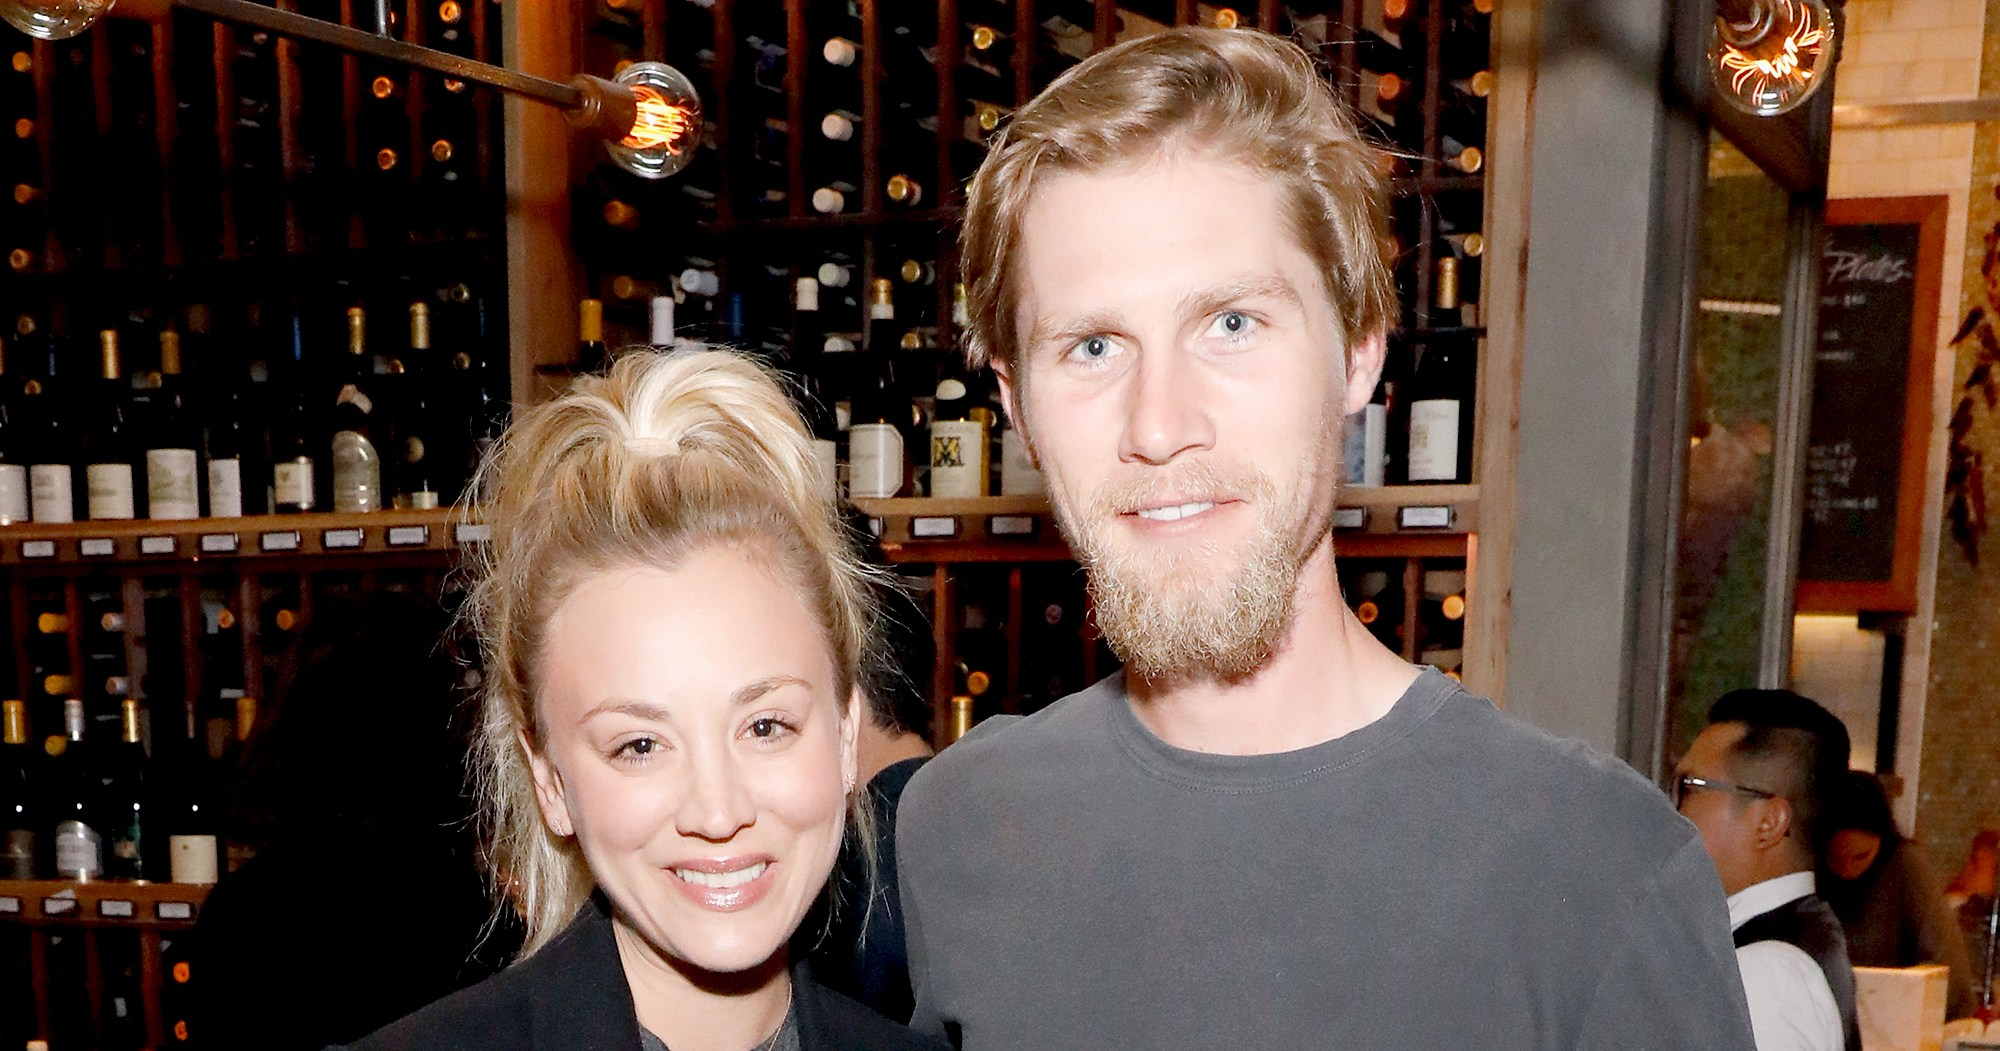 No Thanks! Kaley Cuoco Calls This Eating Habit of Her Hubby's 'So Gross'